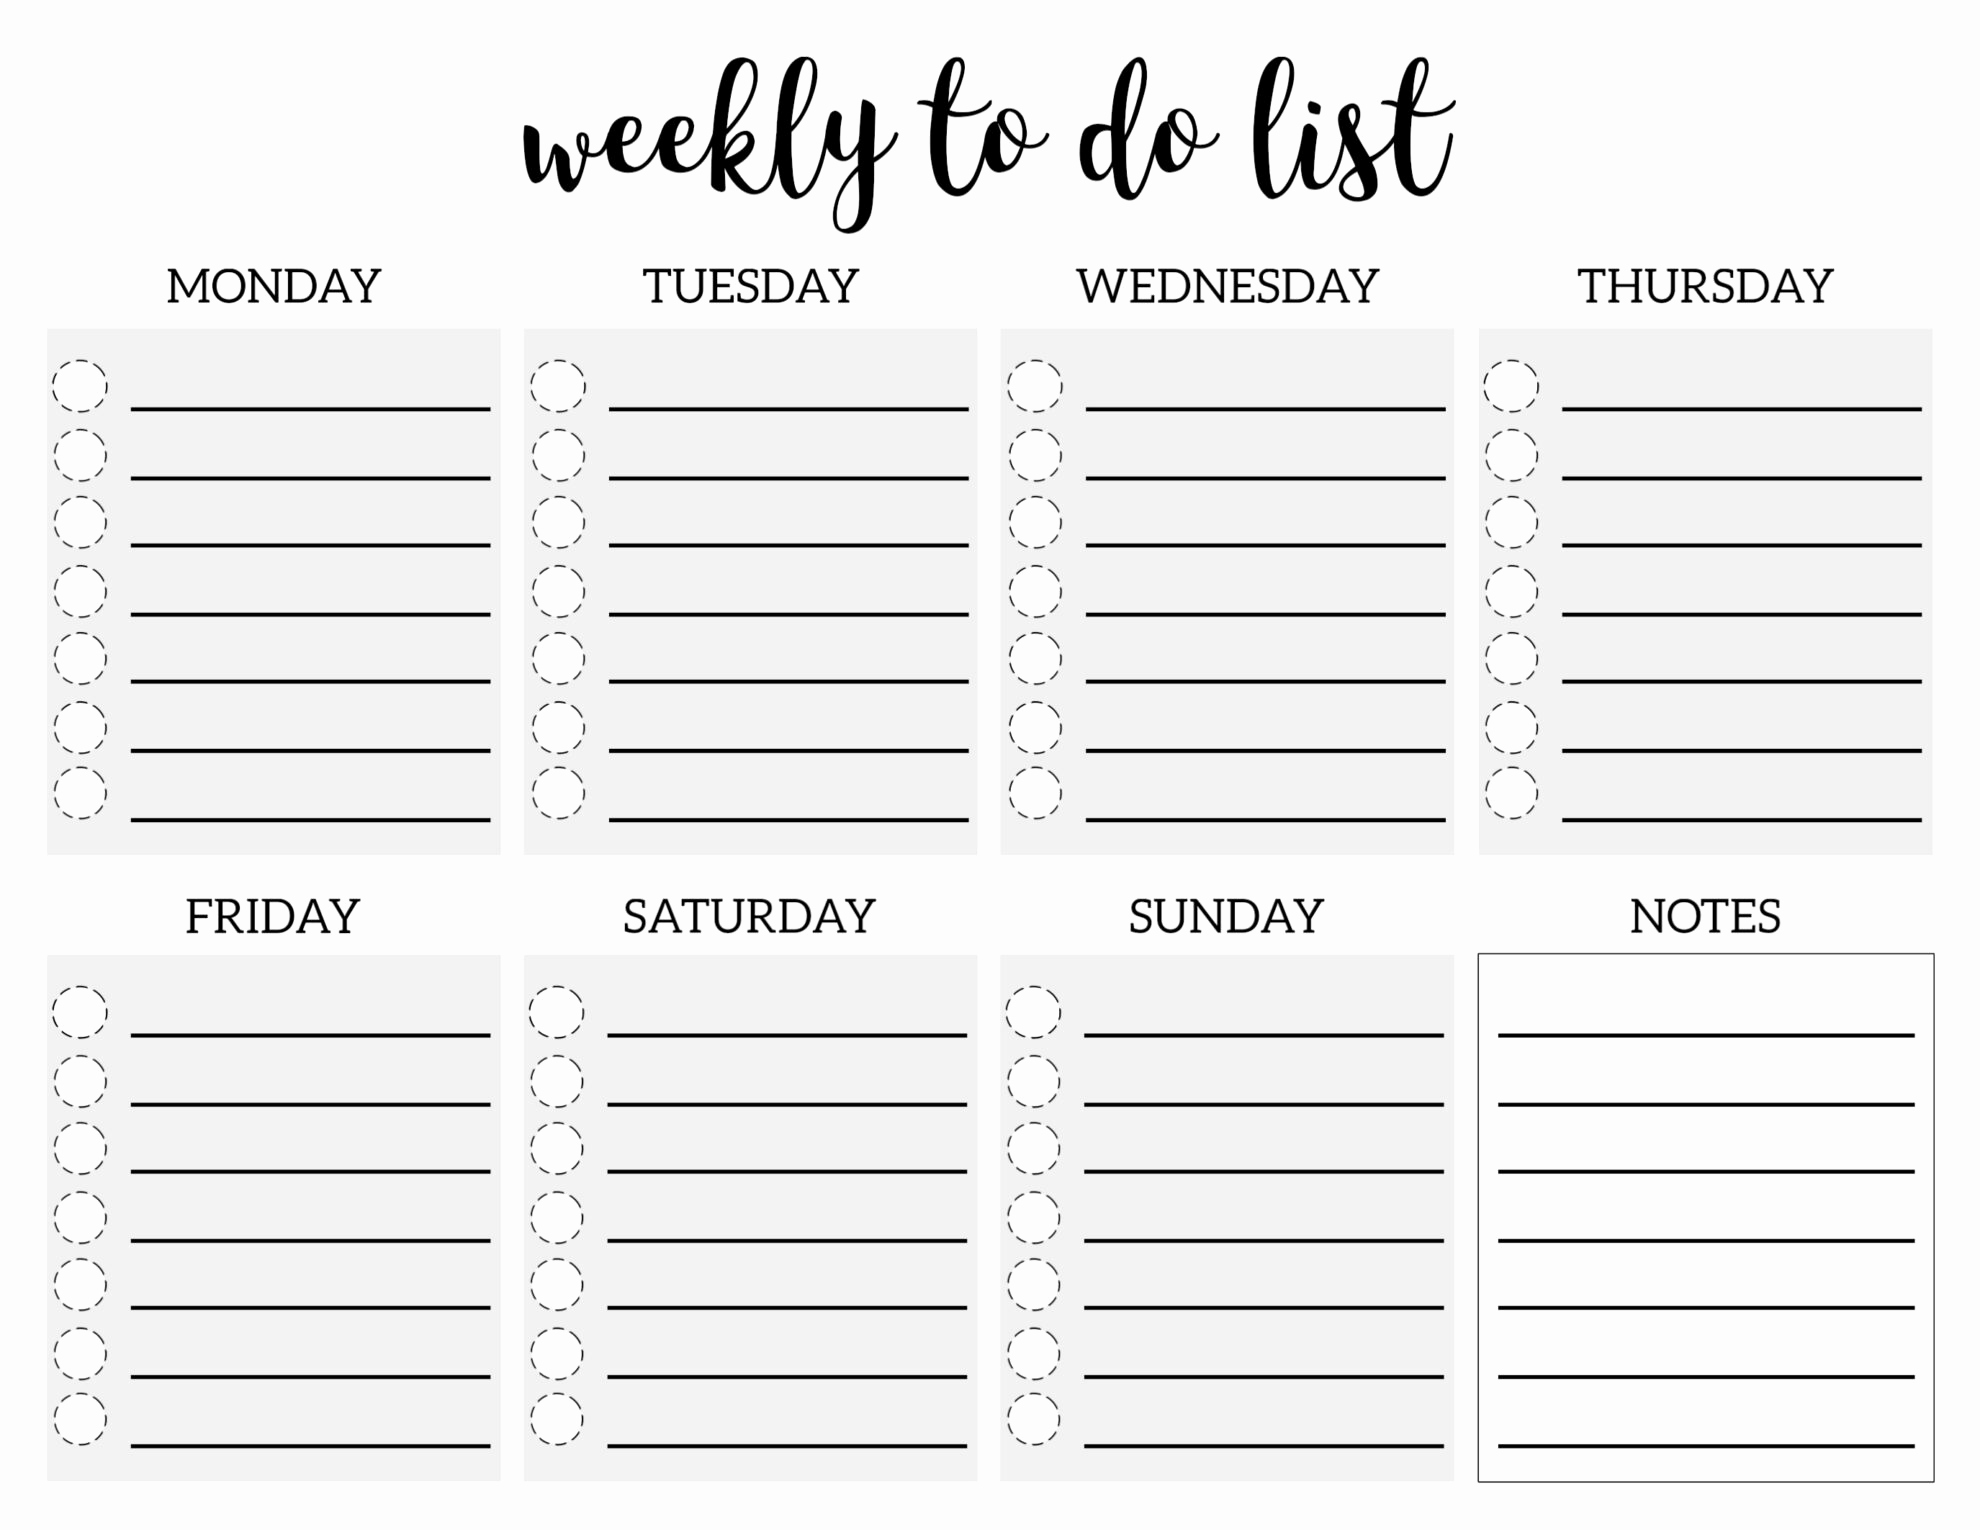 Daily to Do List Templates Luxury Weekly to Do List Printable Checklist Template Paper